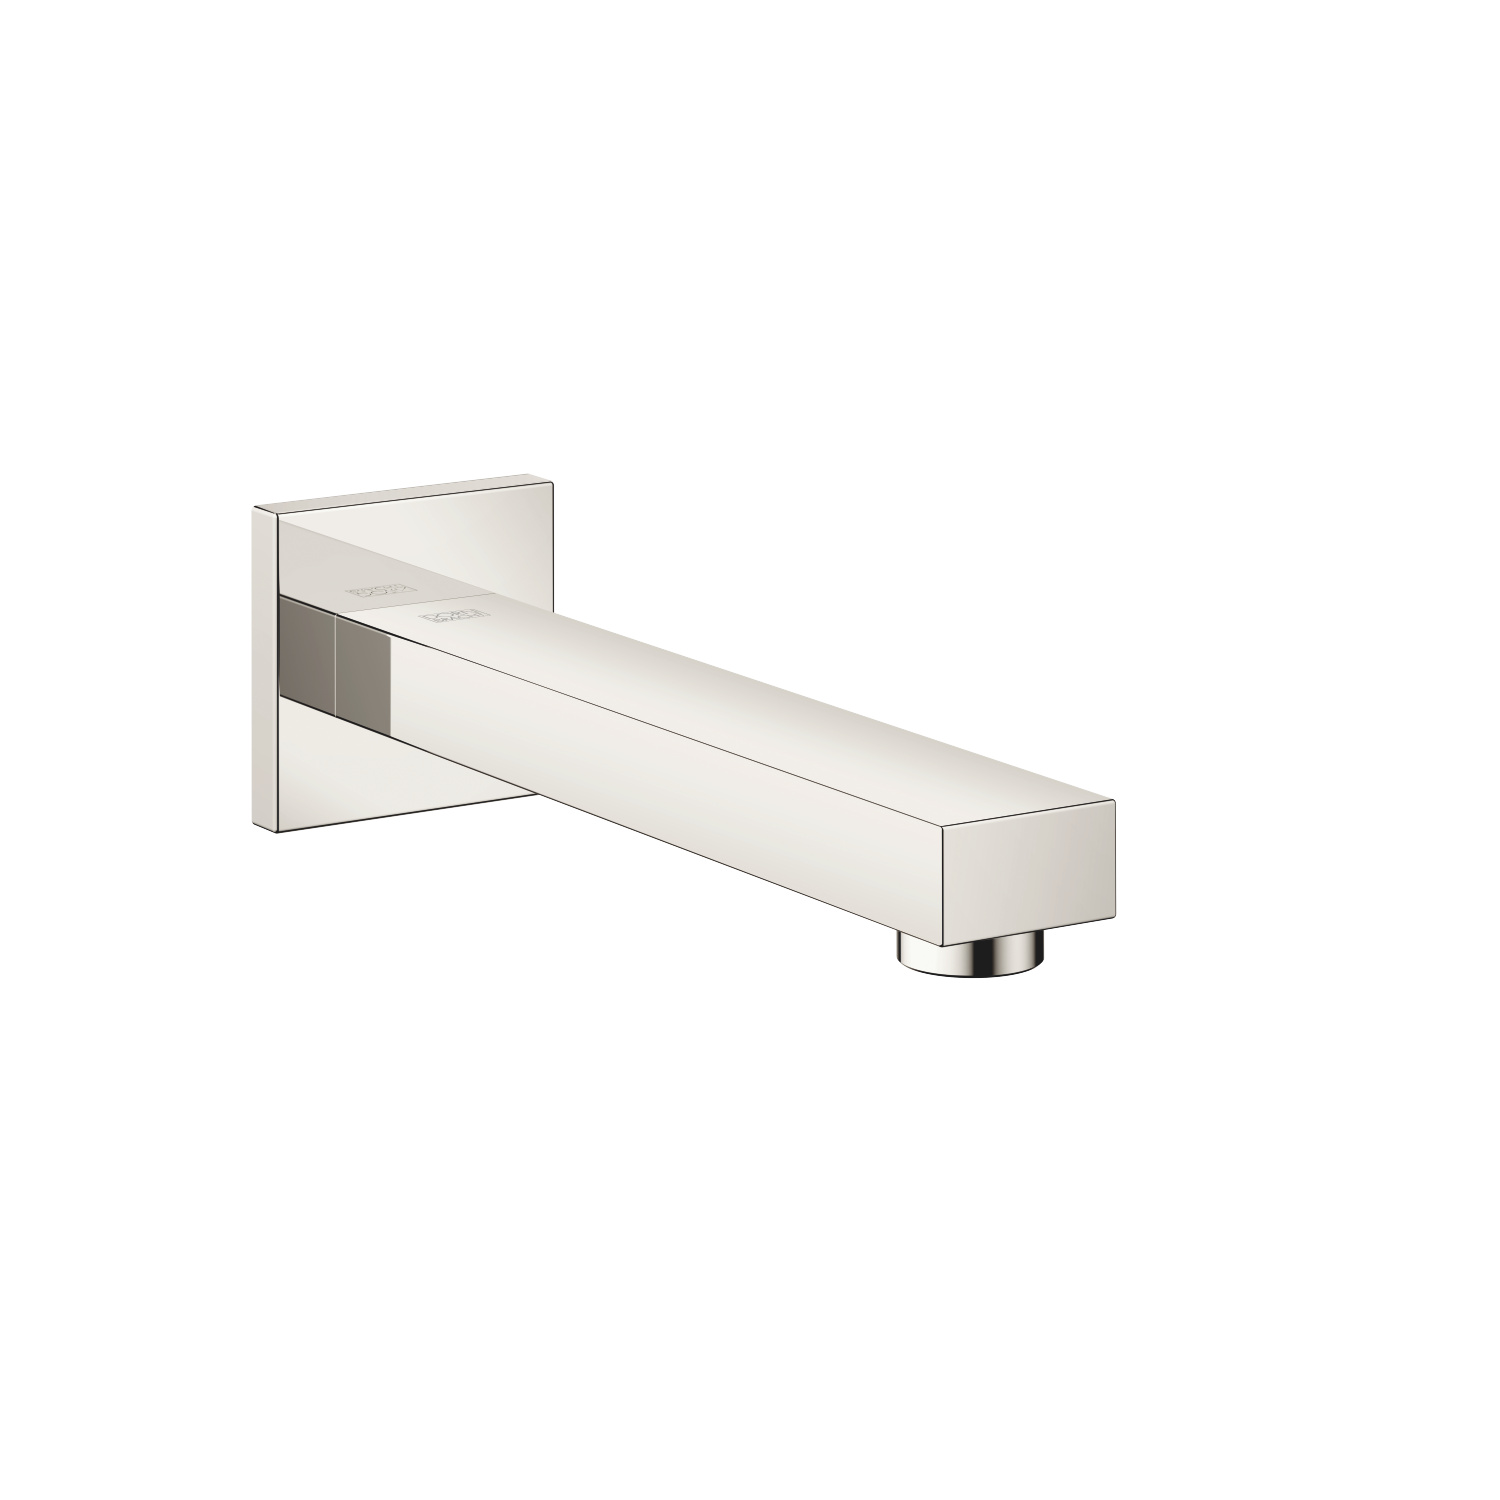 Wall-mounted basin spout without pop-up waste - platinum